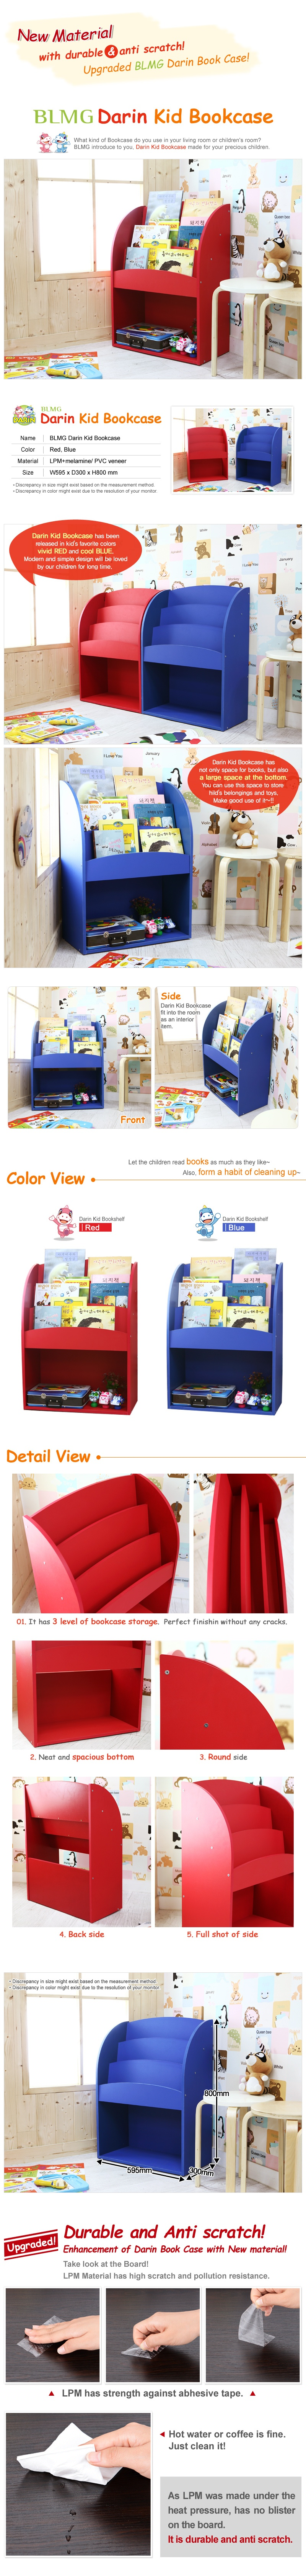 baby bookshelf office bookcase beautiful home alex kid cafe cafekid shelf book bookcases